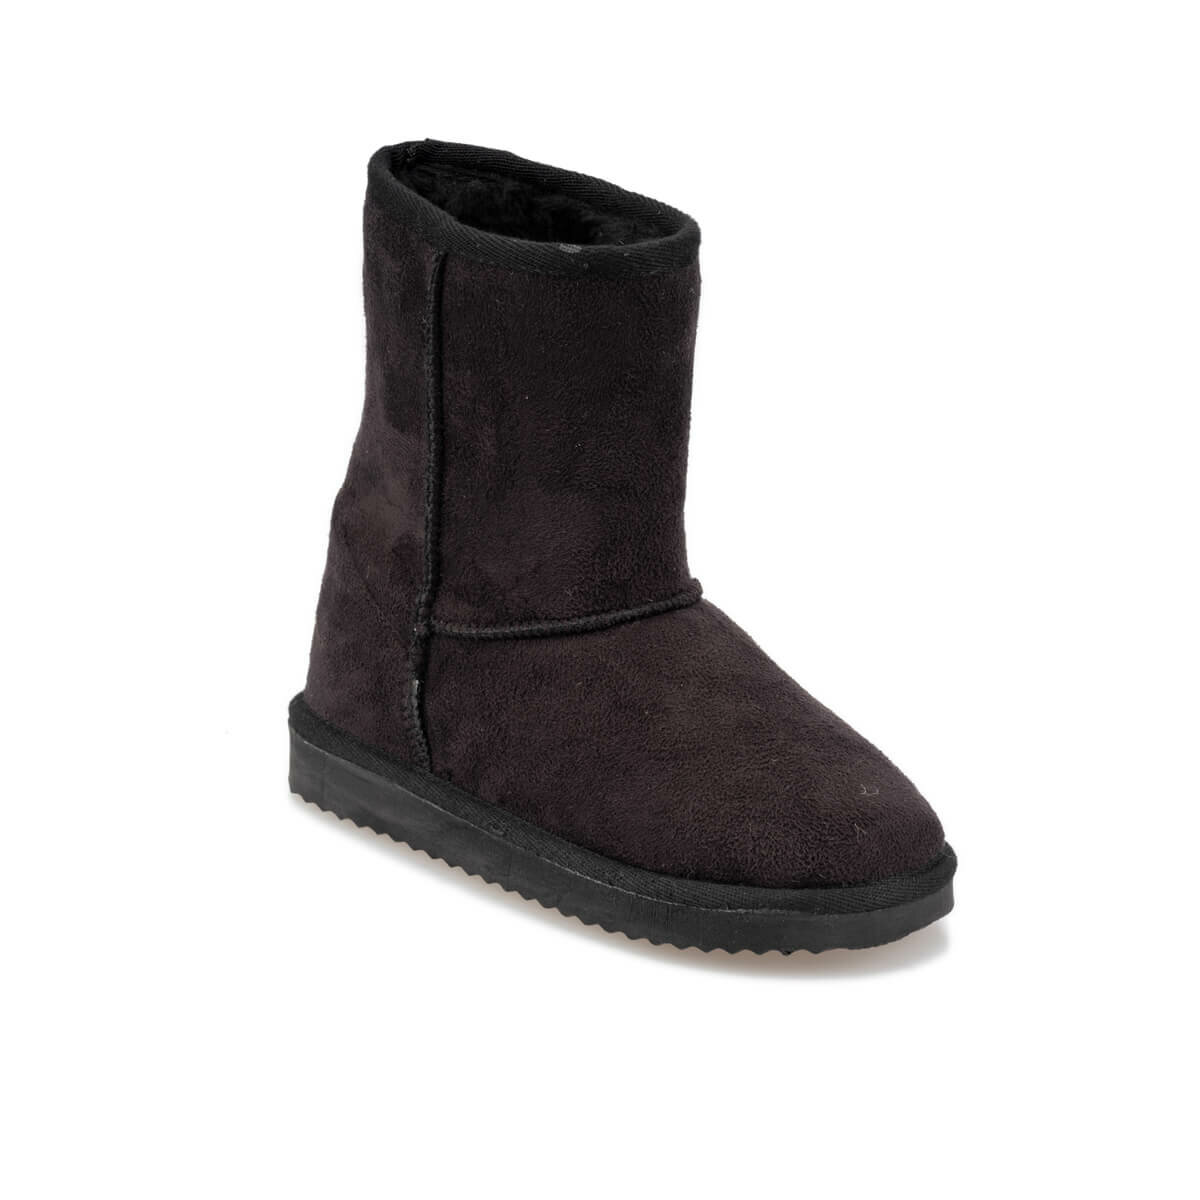 FLO Girls Shoes Black Female Child Ankle Winter Shoes Fashion Comfortable Boots Сапоги для девочек 92.511953.F Polaris